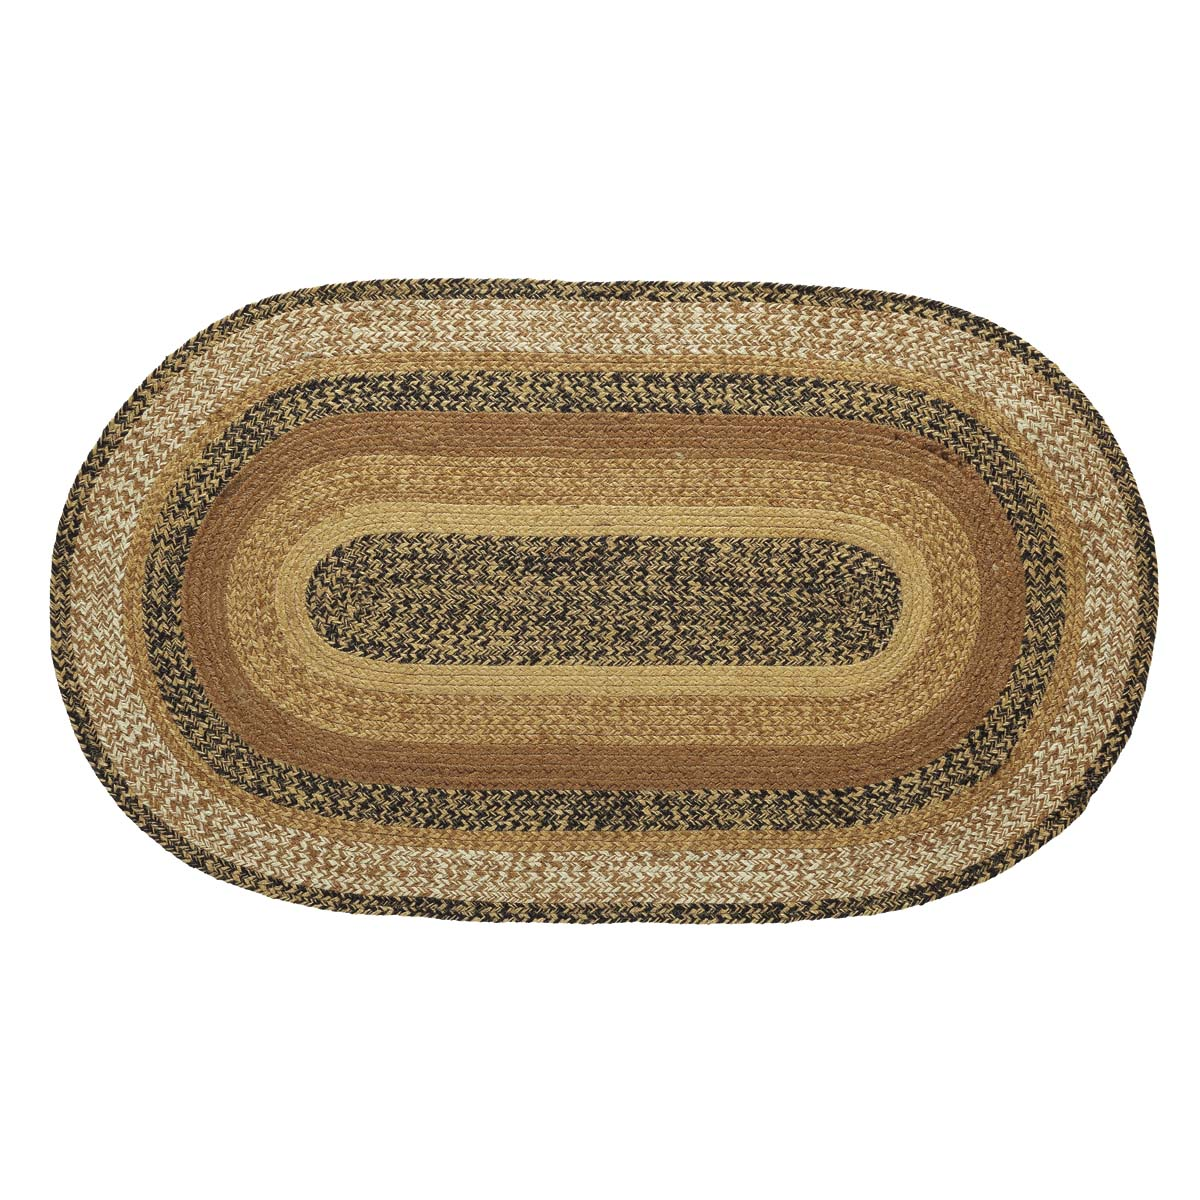 Kettle Grove Jute Rug Oval 24x36